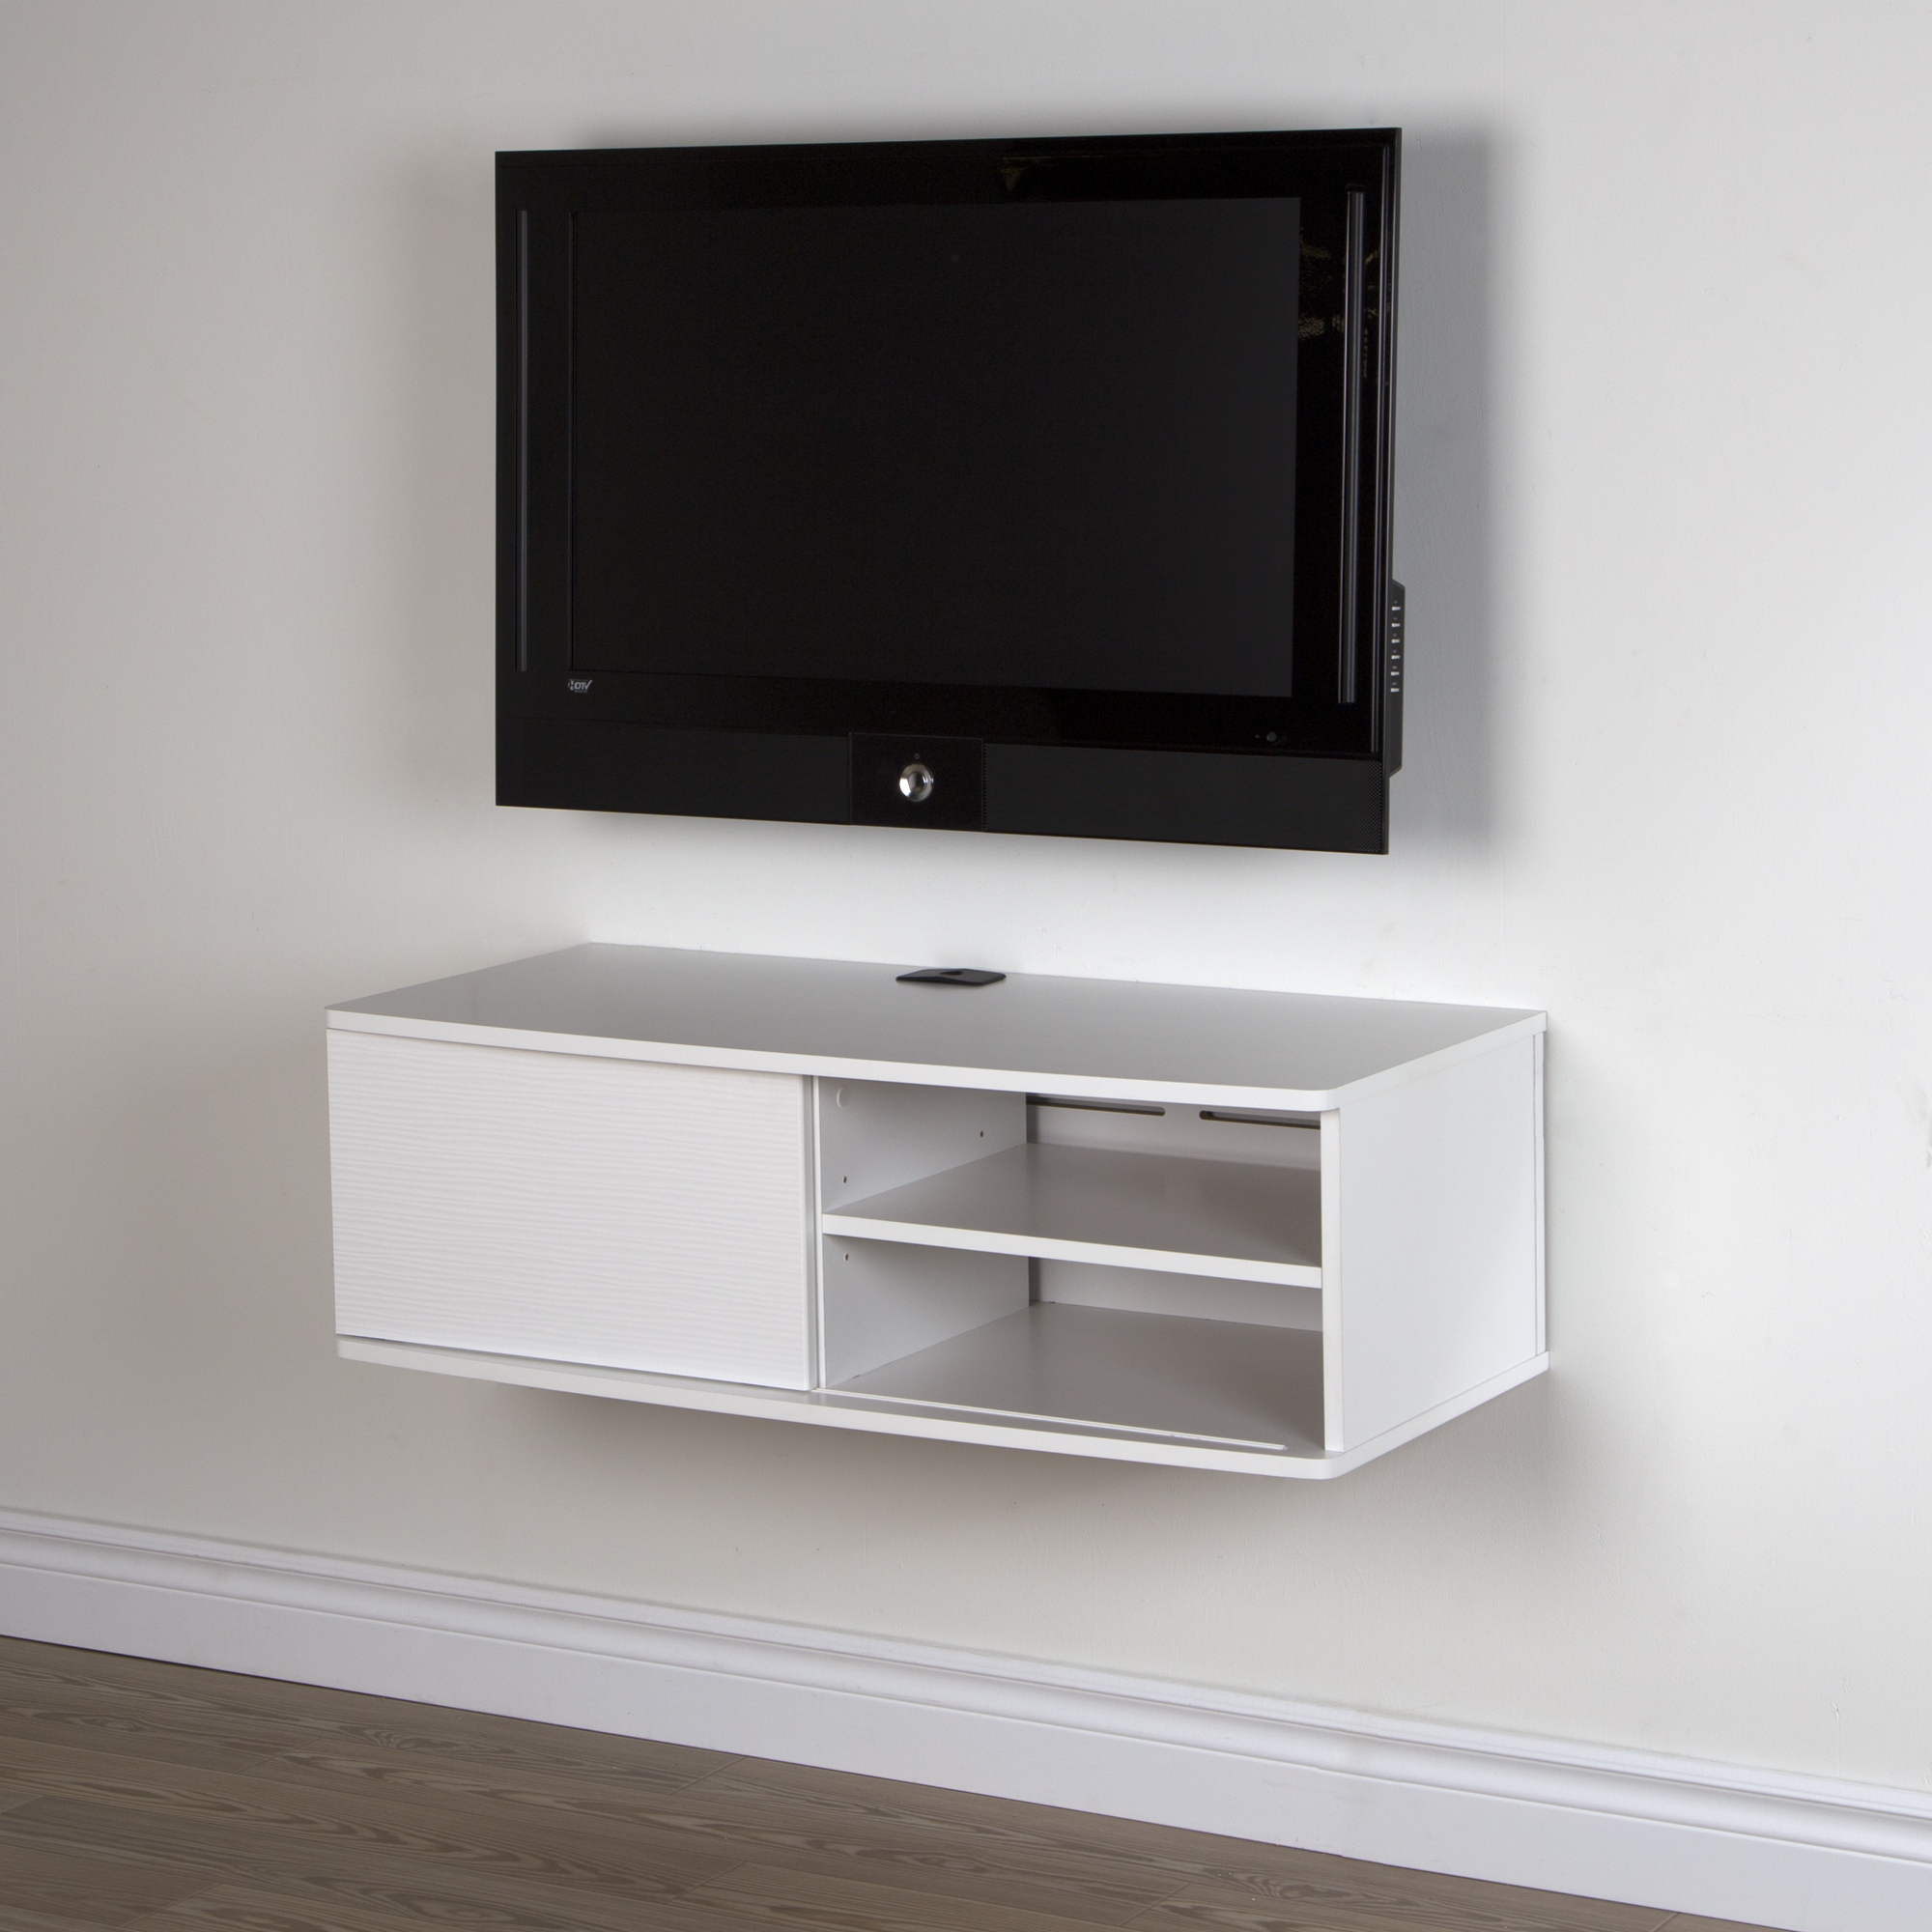 Enjoyable Wall Mounted Tv Stand For Tvs Up To 38 Inch White Sliding Download Free Architecture Designs Aeocymadebymaigaardcom